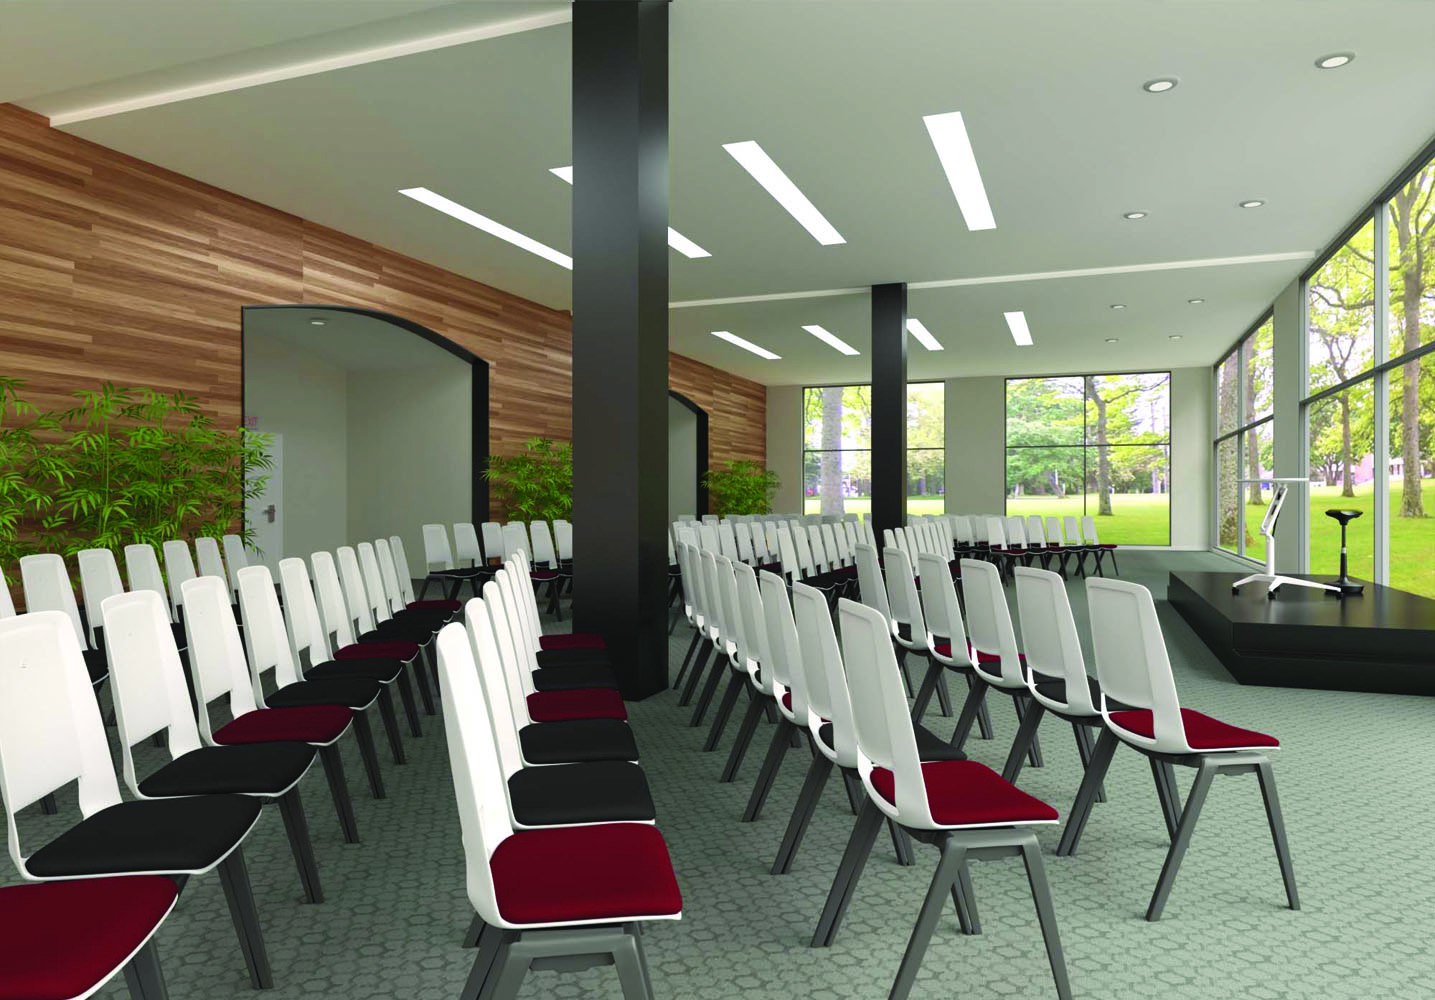 Office Chairs And Tables Training Room Furniture